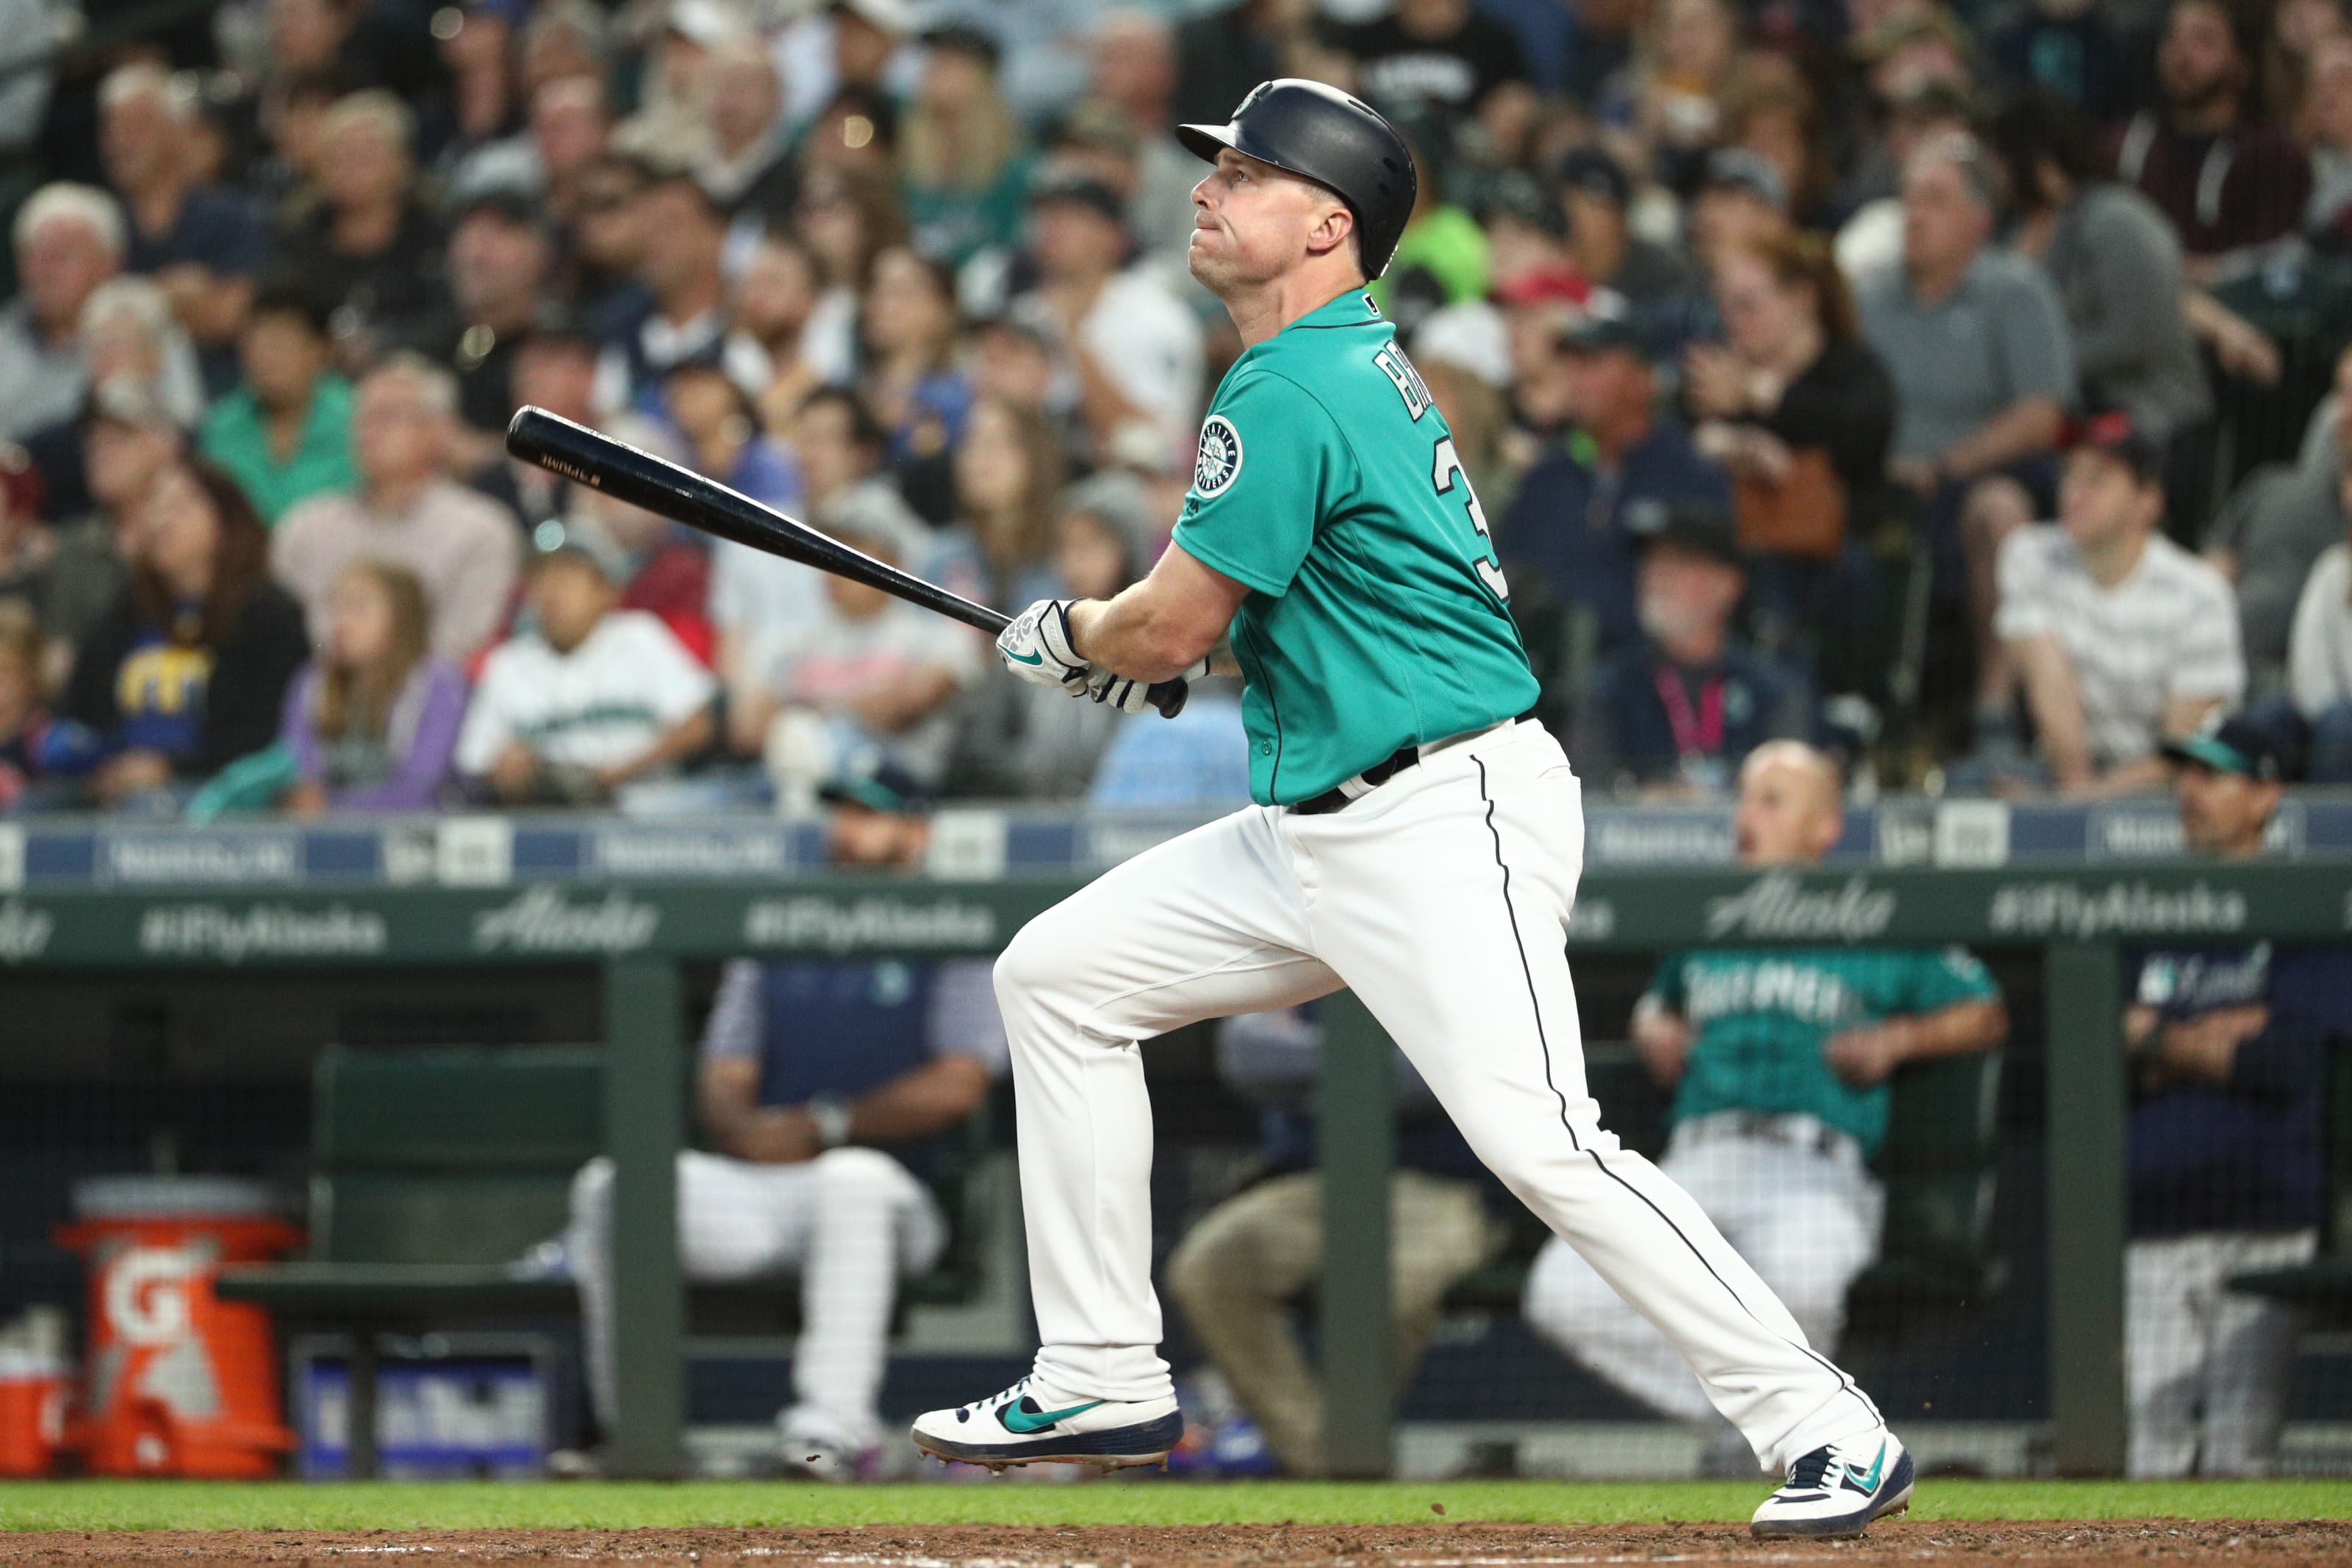 Jay Bruce of the Mariners swings.